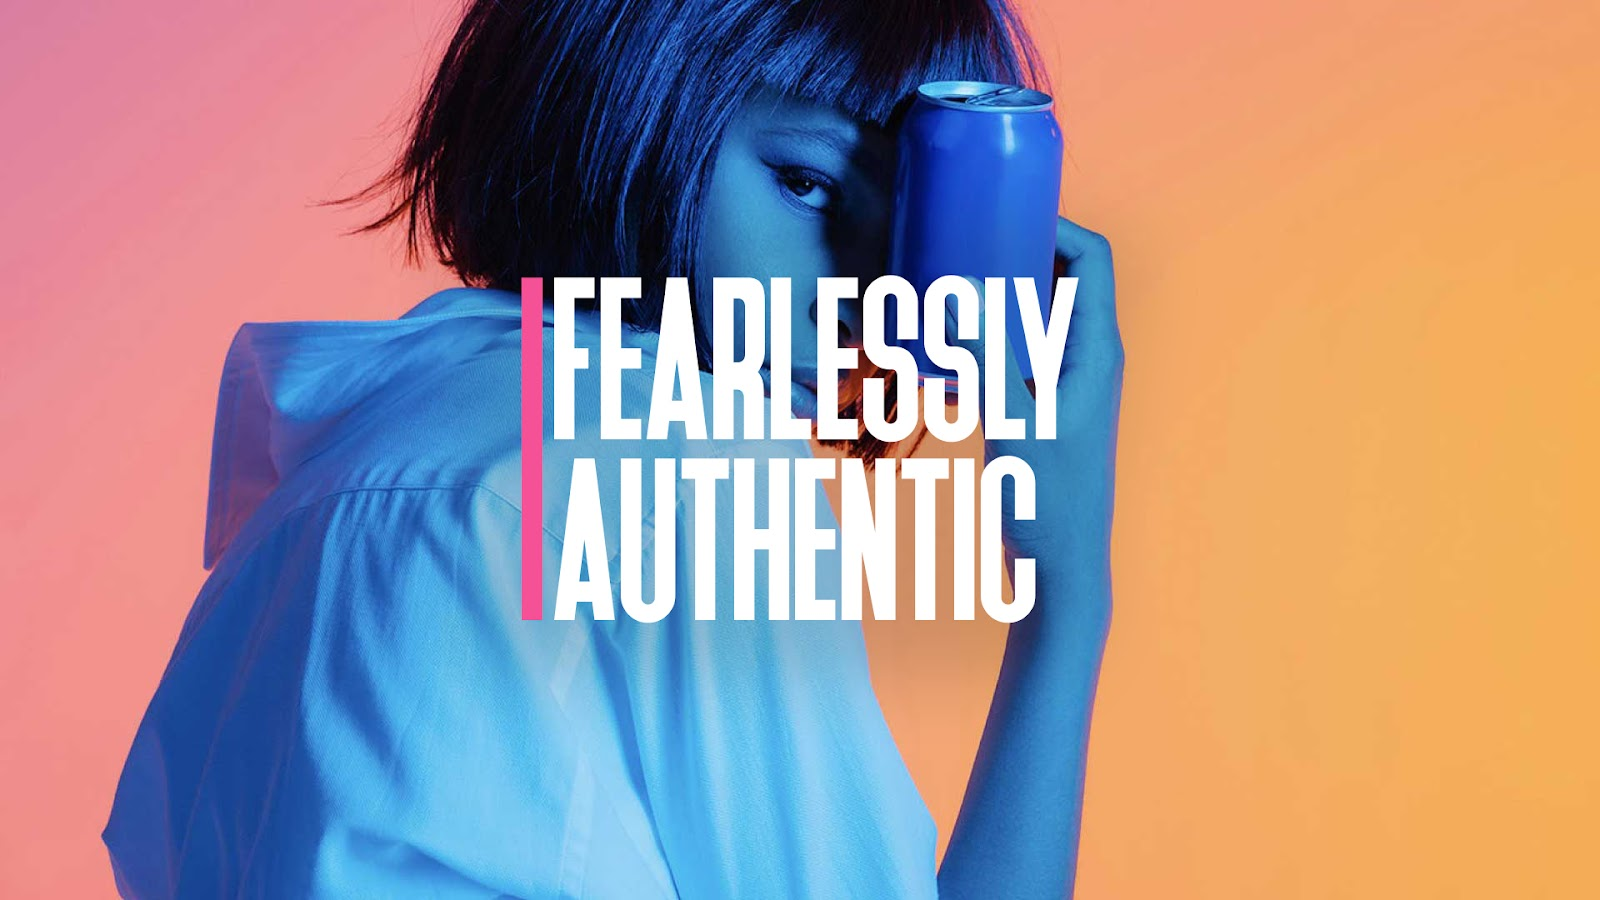 Woman Holding Can labeled Fearlessly Authentic